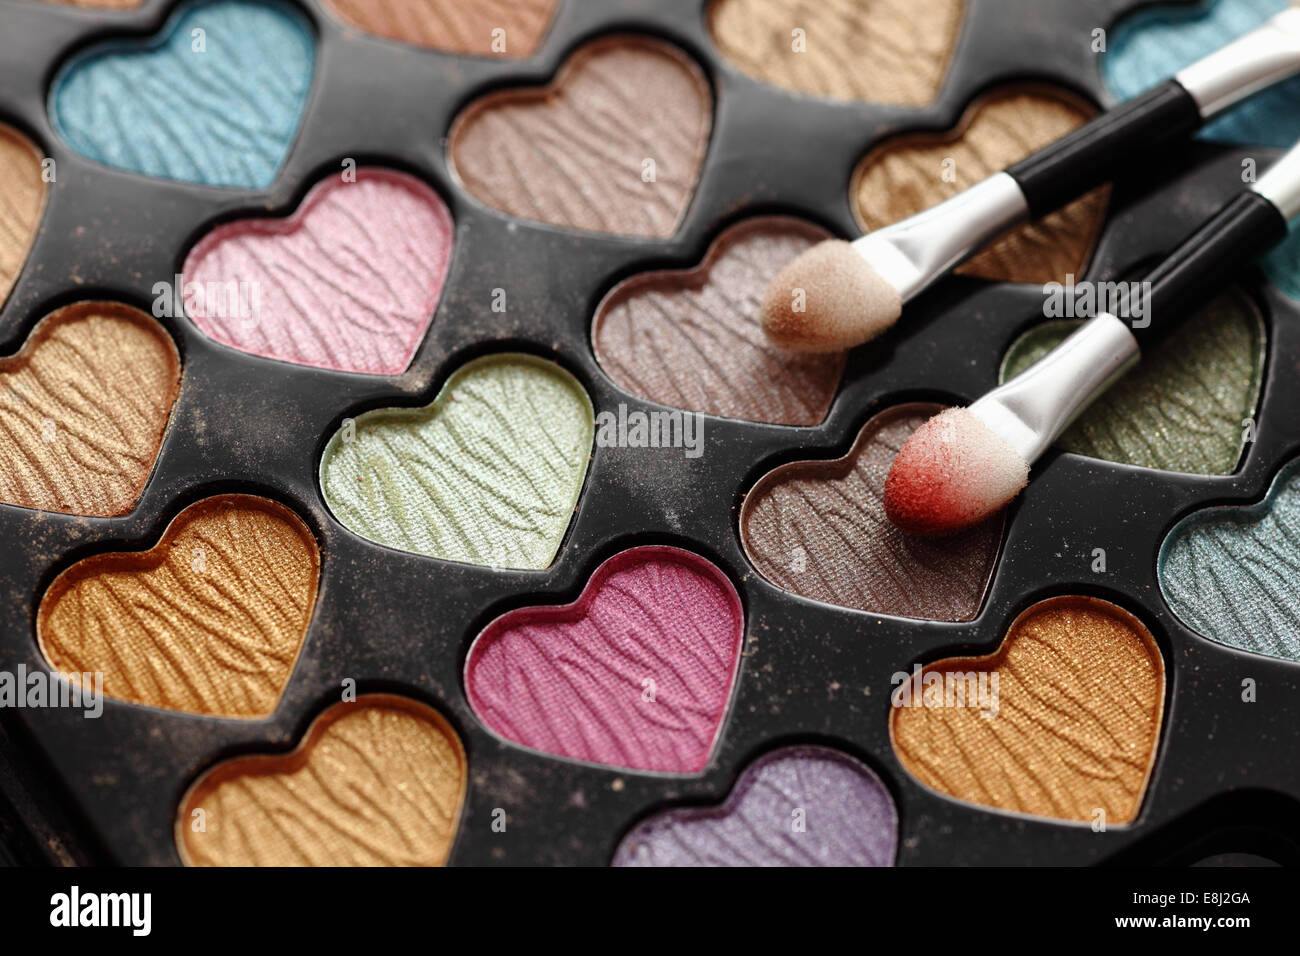 Close-up of eyeshadow heart shaped palette with applicators. - Stock Image